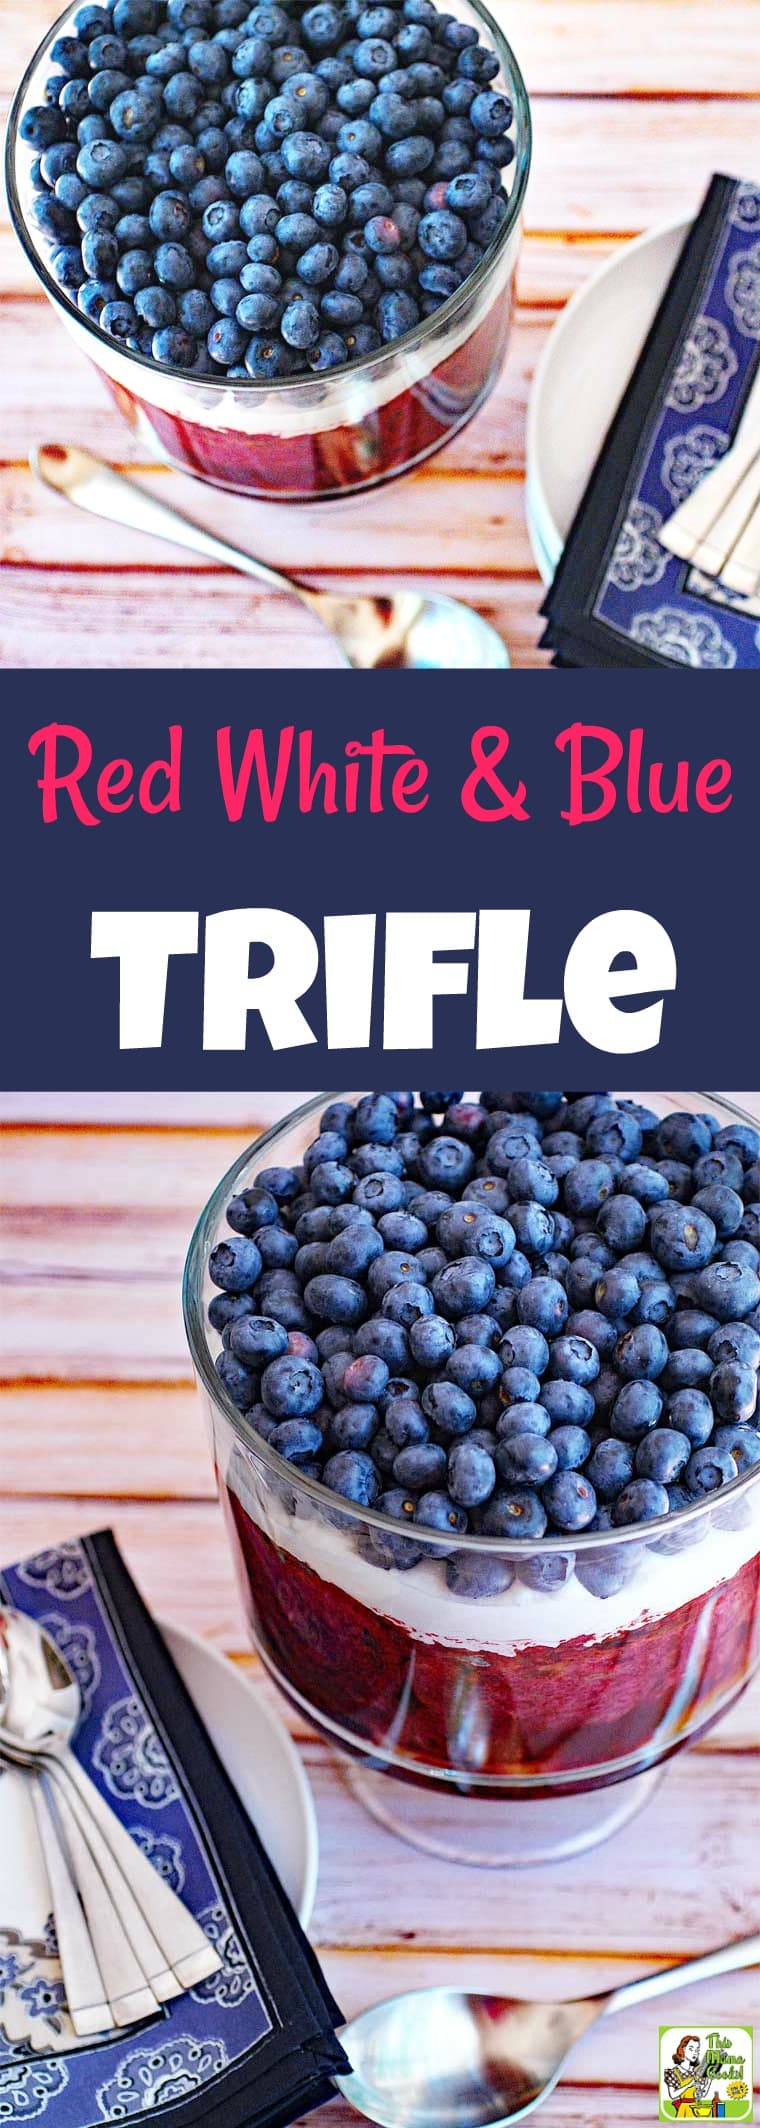 Make a Red White and Blue Trifle for your next party! This easy trifles recipe uses three types of healthy berries – blueberries, blackberries, and raspberries. It's reduced calorie and using non-dairy topping and gluten-free bread, too. It's the perfect trifle berry dessert for entertaining! #recipe #trifle #dessert #berries #blueberries #raspberries #fourthofjuly #easy #dessertrecipes #recipeoftheday #healthyrecipes #easyrecipes #glutenfree #recipe #memorialday #cookout #redwhiteandblue